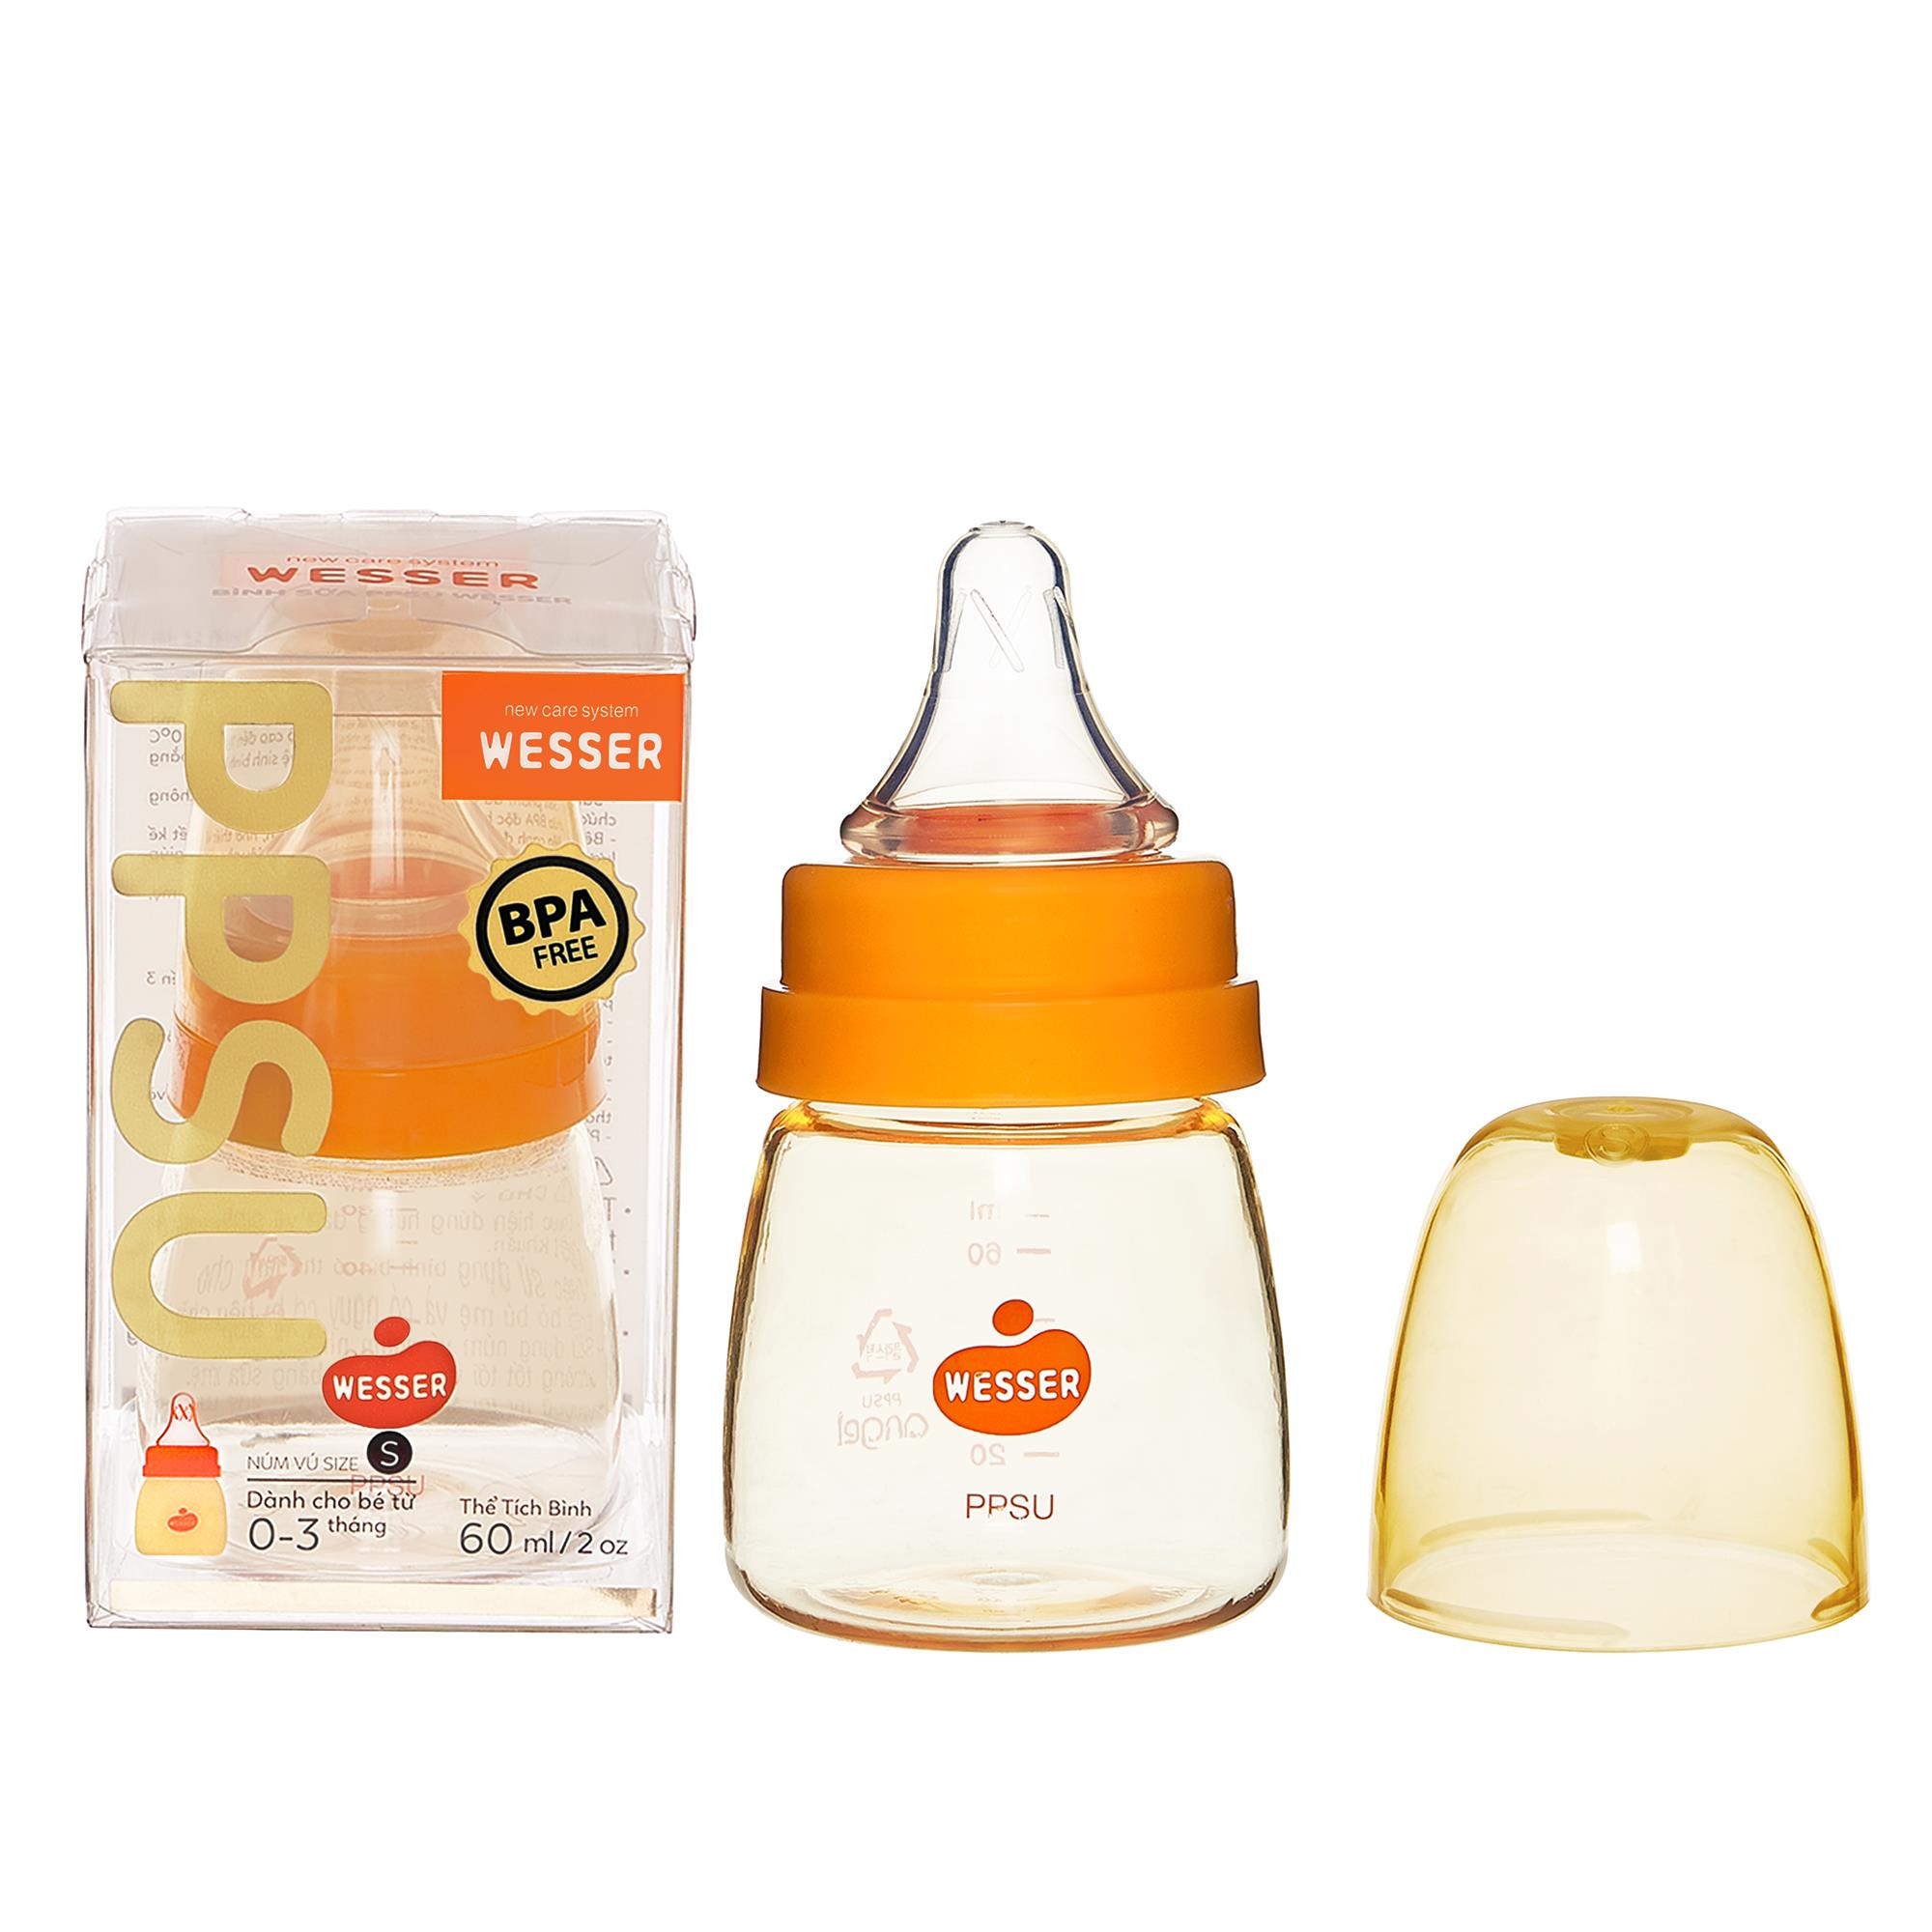 Wesser PPSU Feeding Bottle 60ml